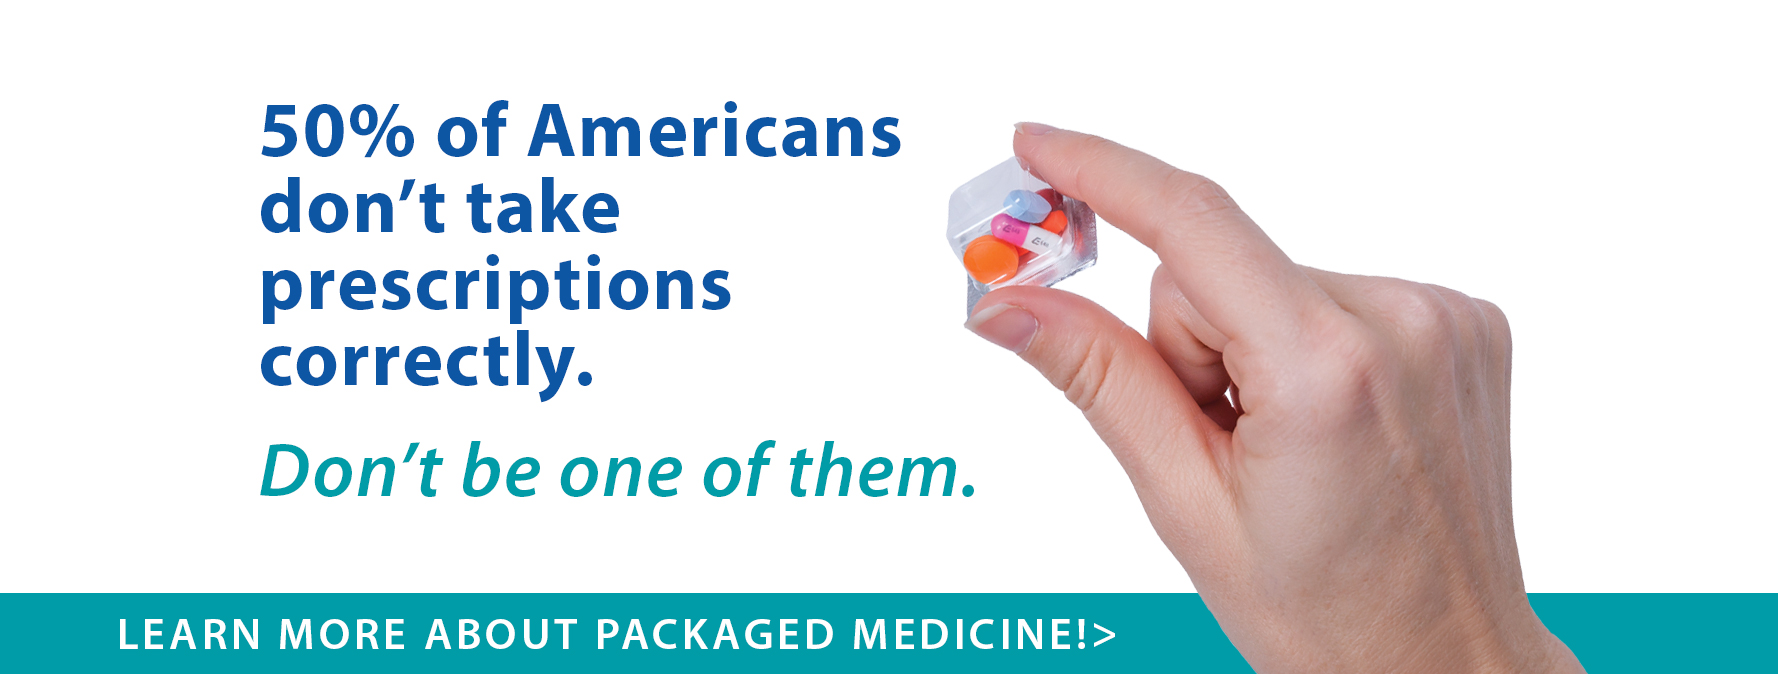 Learn more about packaged medicine.